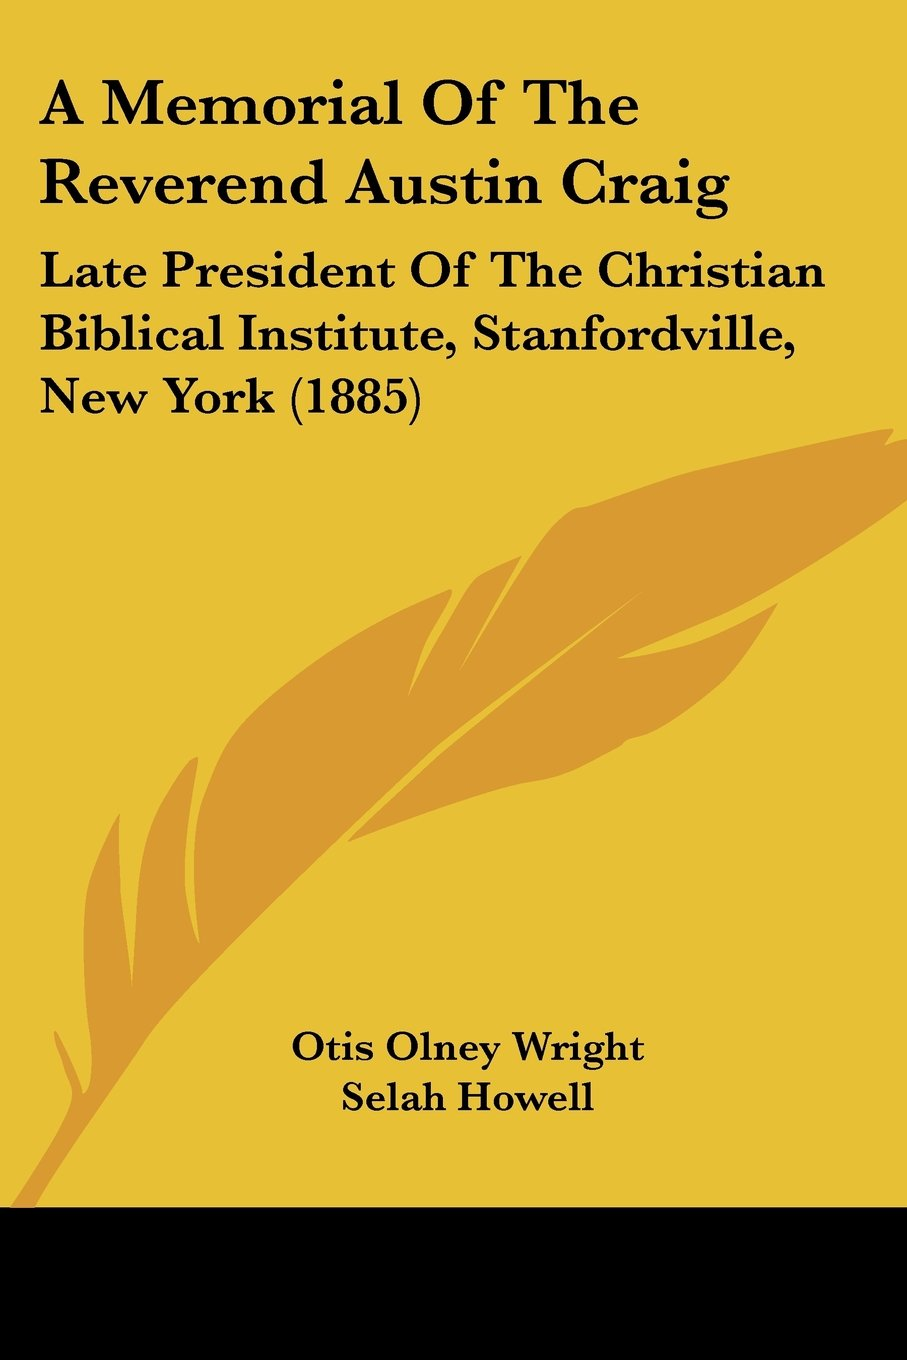 Download A Memorial Of The Reverend Austin Craig: Late President Of The Christian Biblical Institute, Stanfordville, New York (1885) PDF